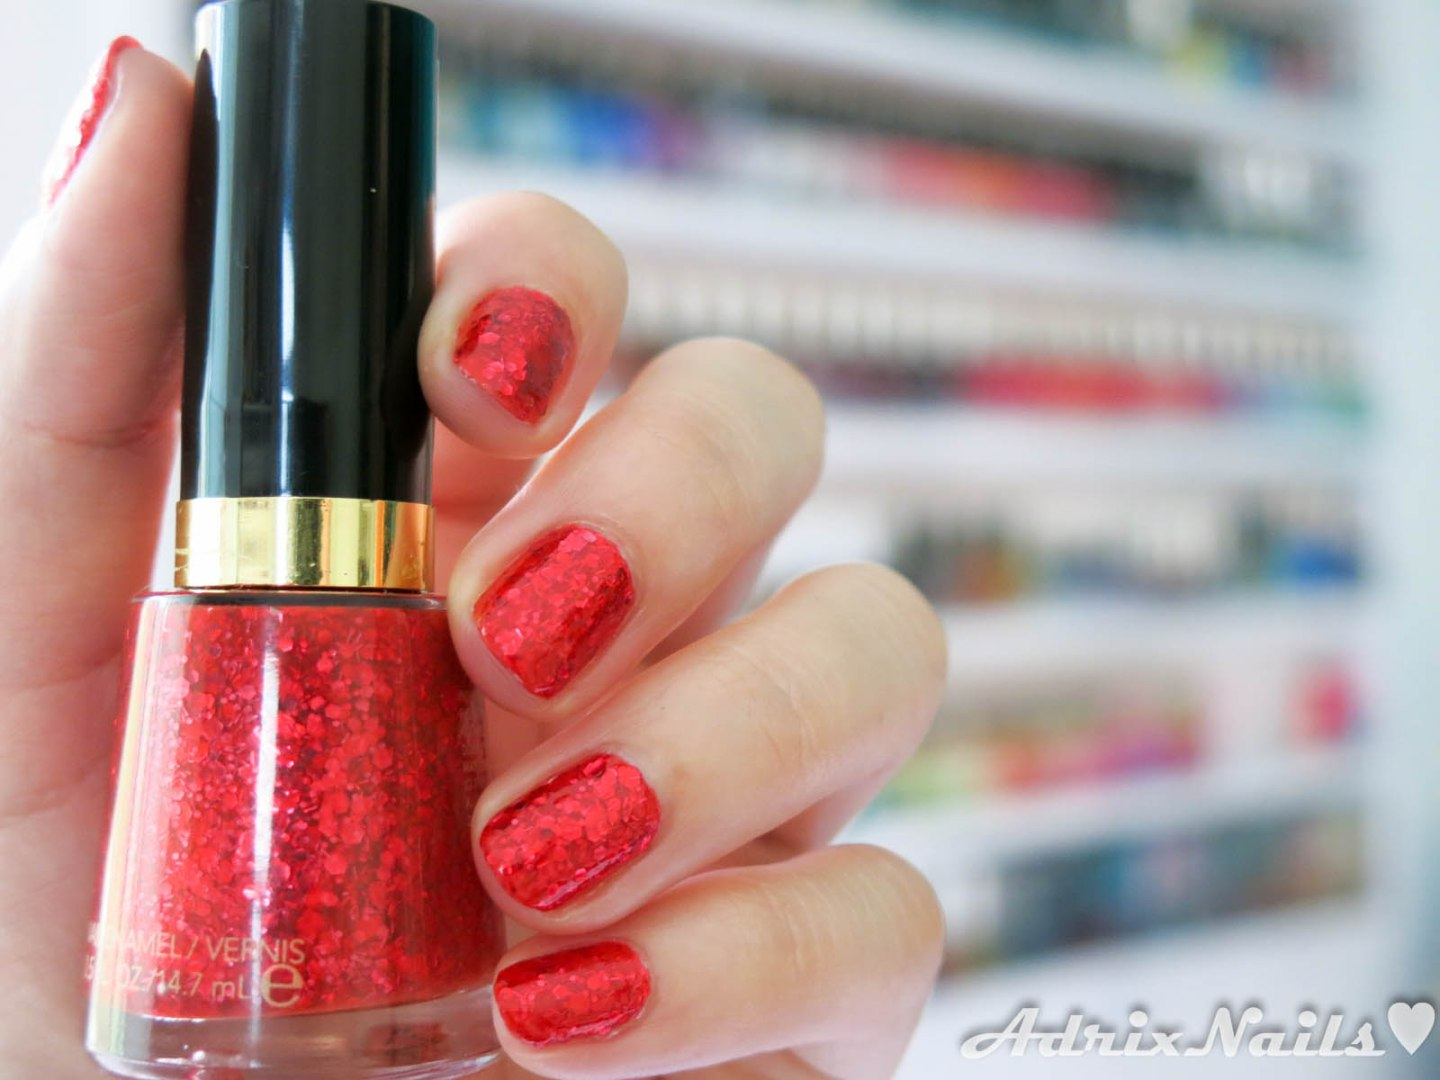 boho chic, revlon, confident, glitter, glitter rojo, jelly rojo, rojo, color rojo, paso a paso, uñas fáciles, uñas tutorial, DIY, holo, holográfico, reseñas de esmaltes, review de esmaltes, nail polish review, reseñas, shimmer, diy nails, uñas paso a paso, esmaltes, uñas, swatches, nails, nail art, nail polish, colores, review, adrix nails, blog mexicano dedicado al nail art, blogueras mexicanas, mexican bloggers, blogs de méxico, nailpolishlove,